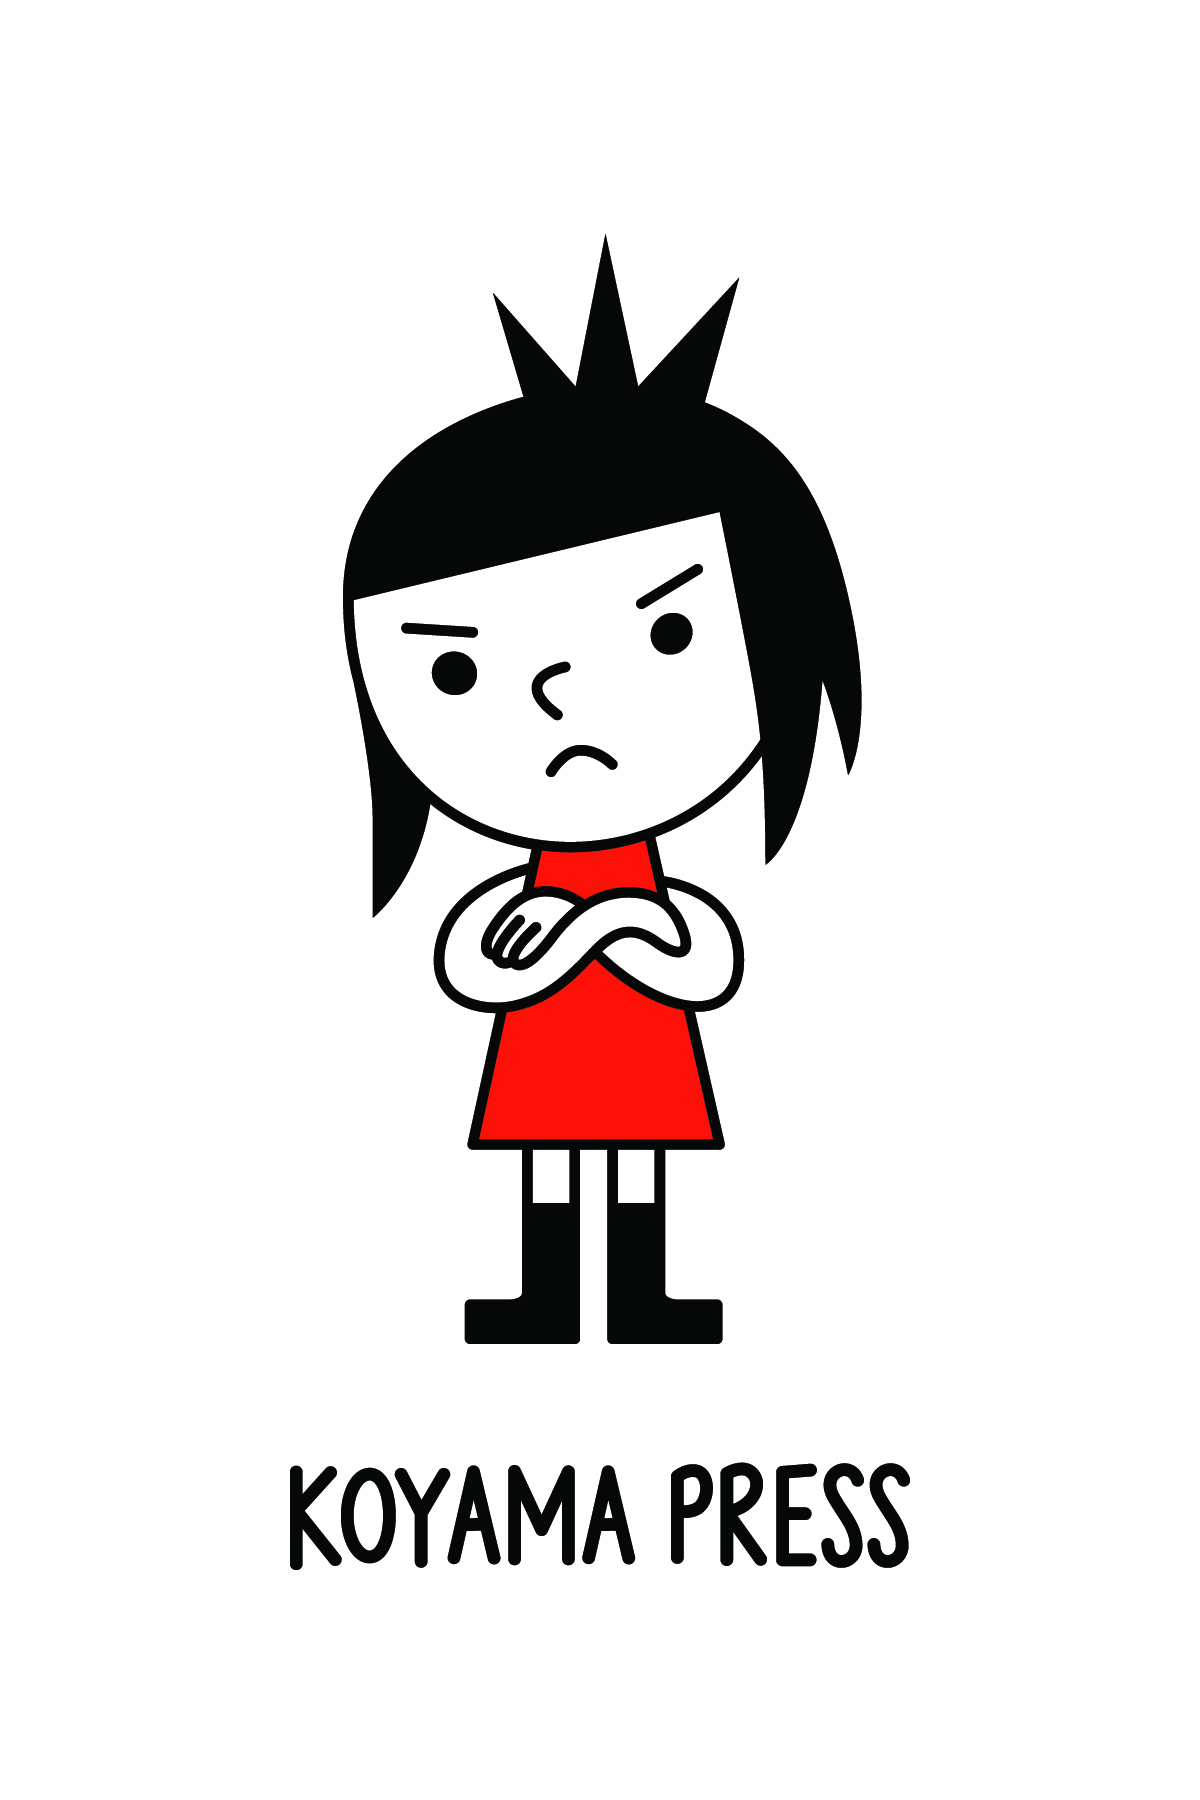 Illustration of grumpy girl in a red dress above the logo for Koyama Press